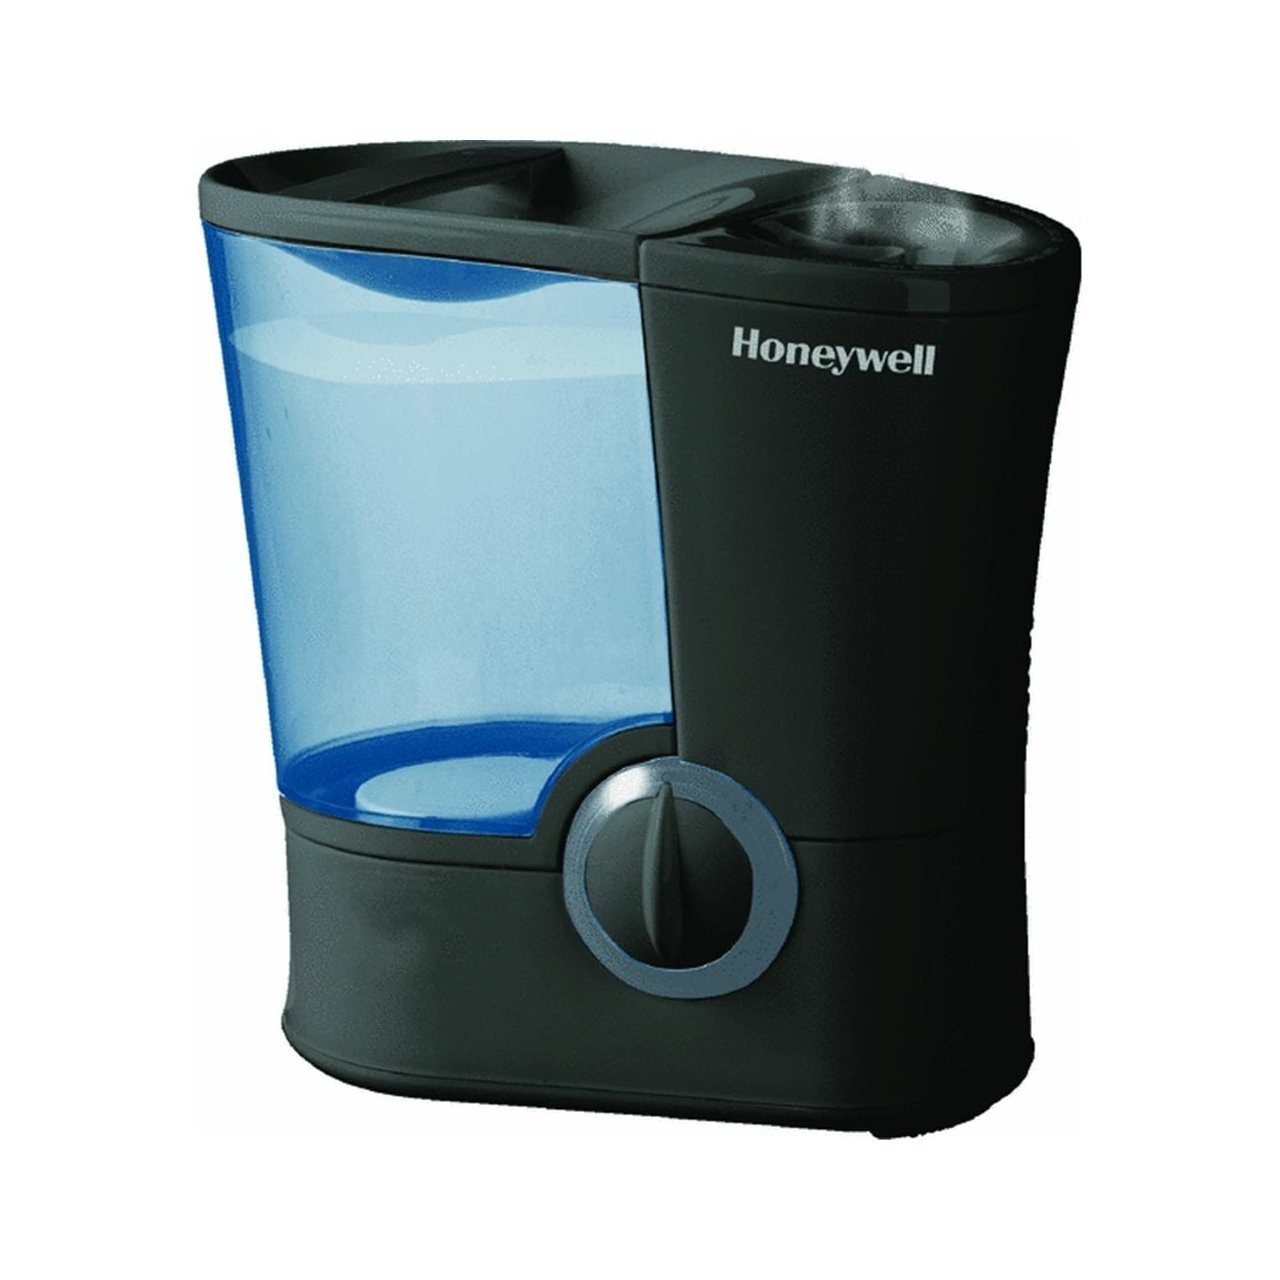 humidifier Honeywell HWM 950 Filter Free Warm Moisture Humidifier #154985